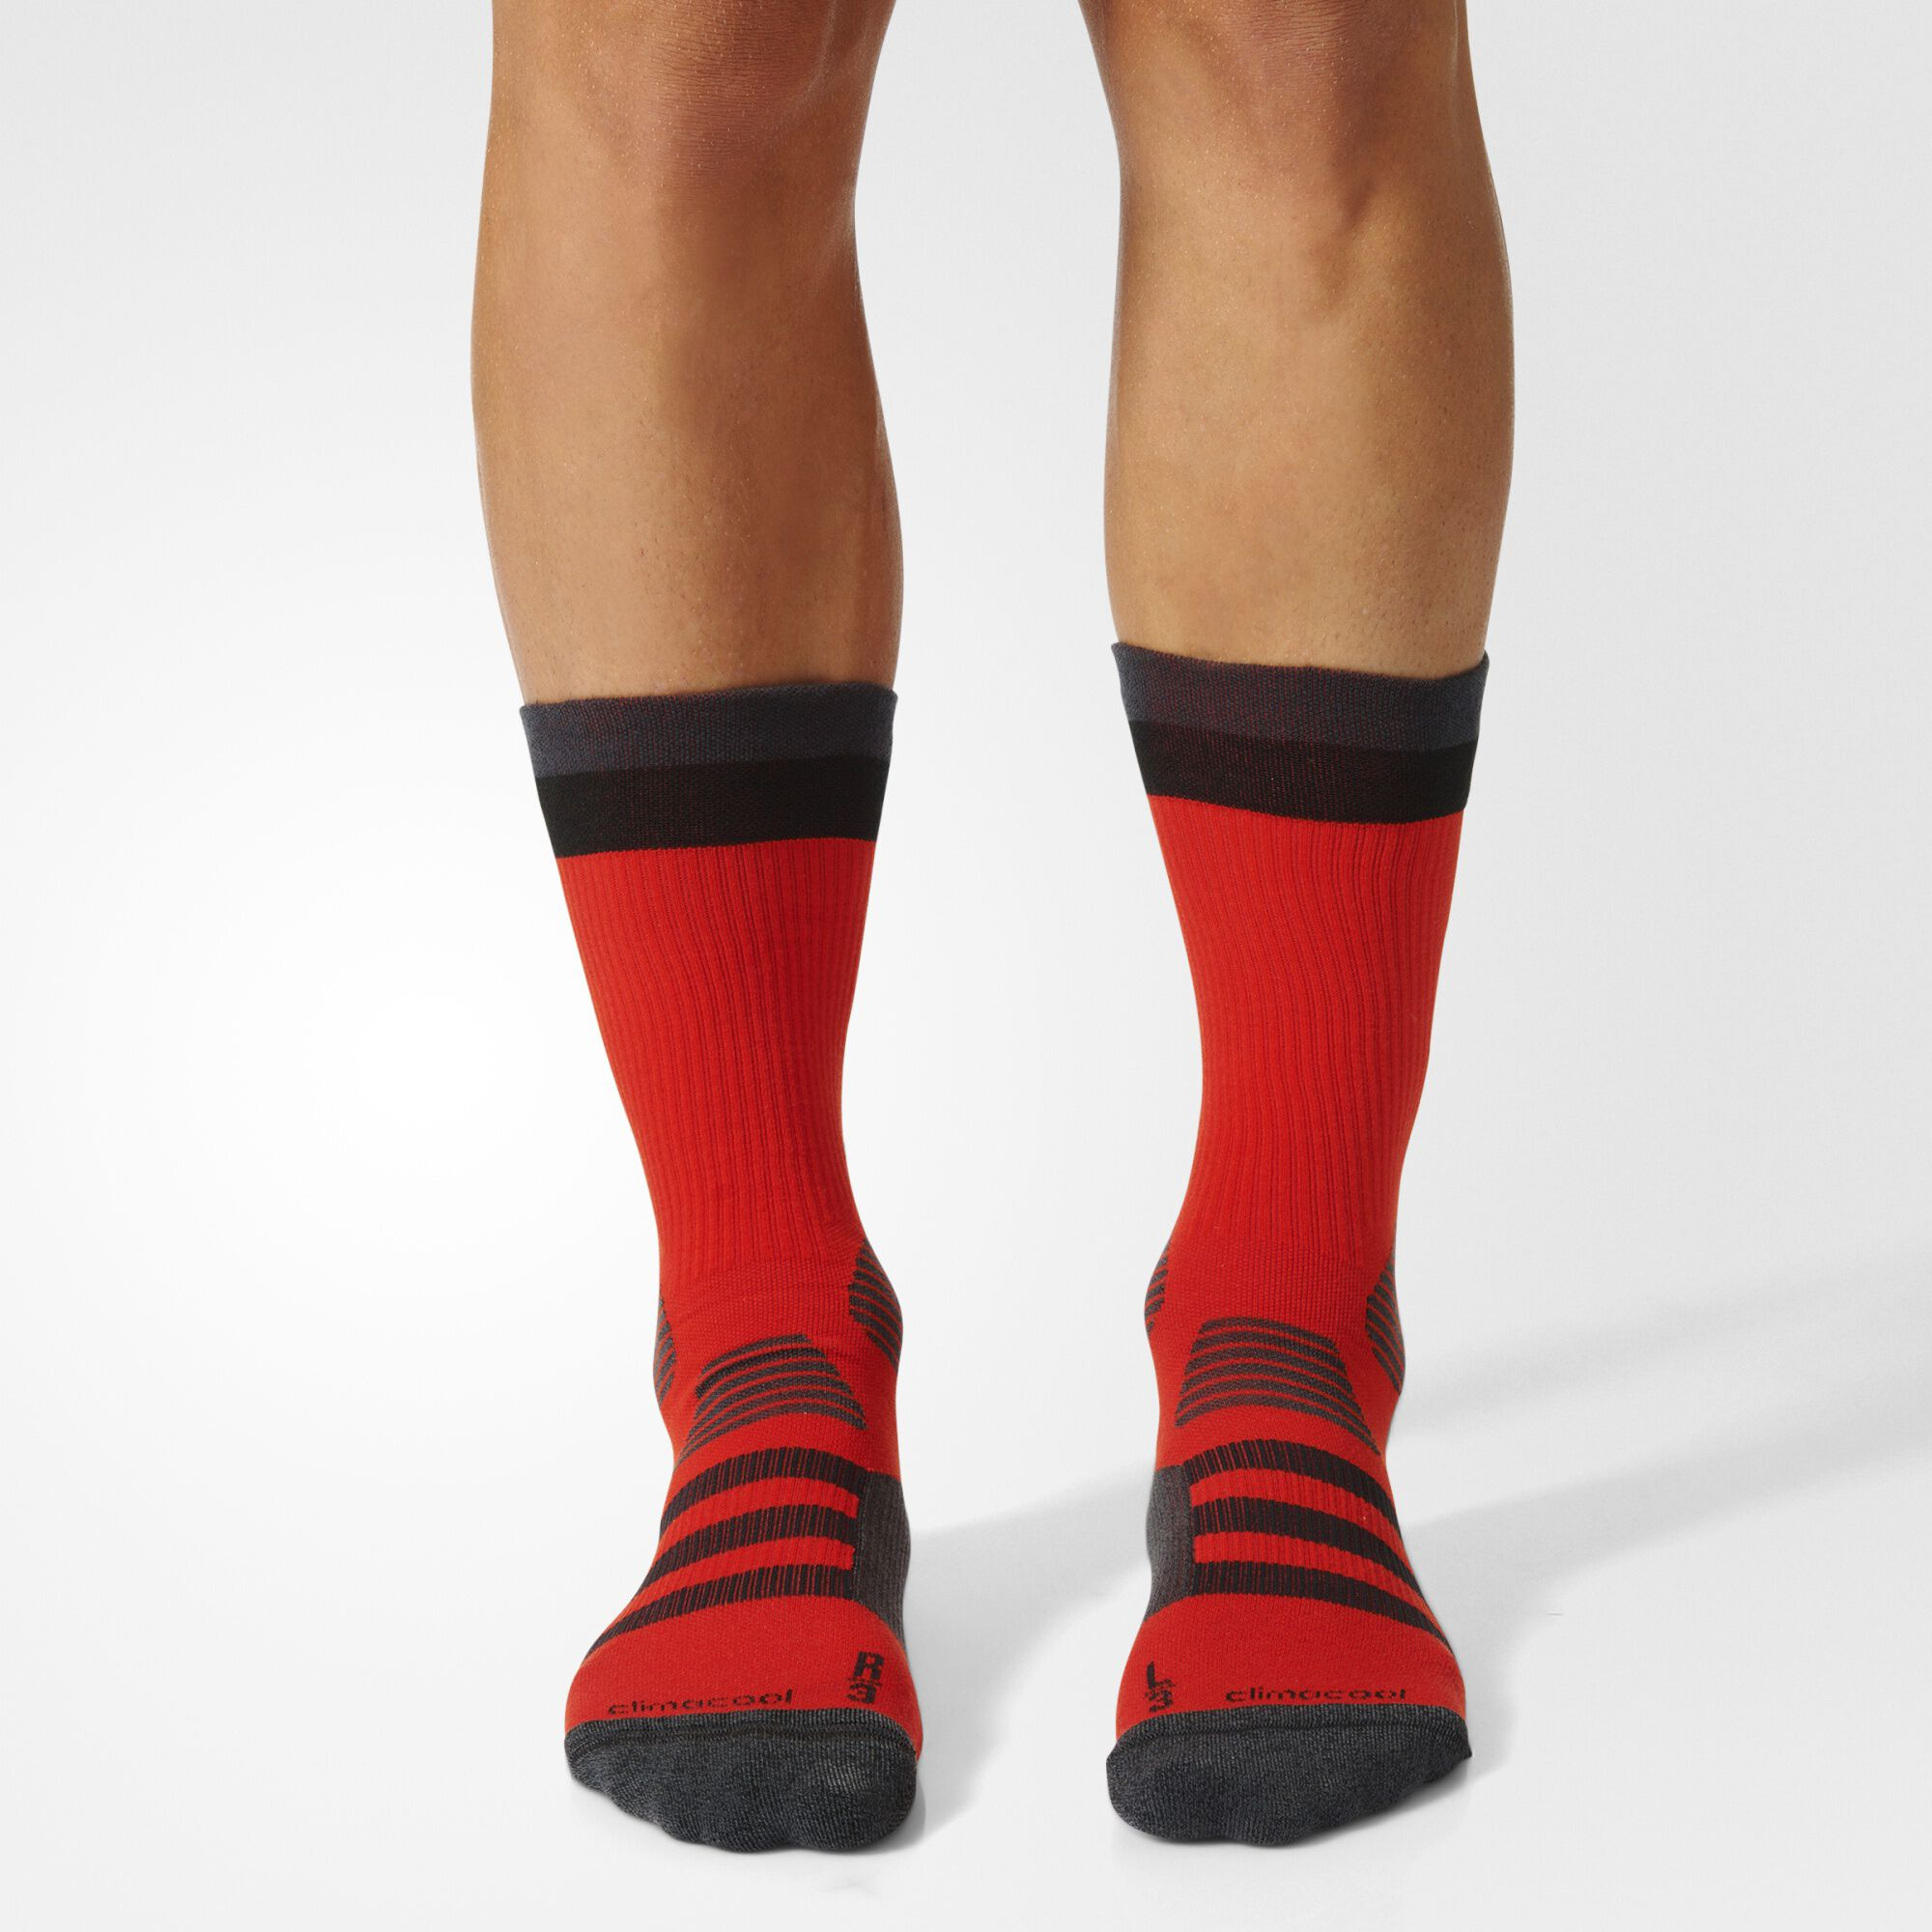 adidas black and red soccer socks